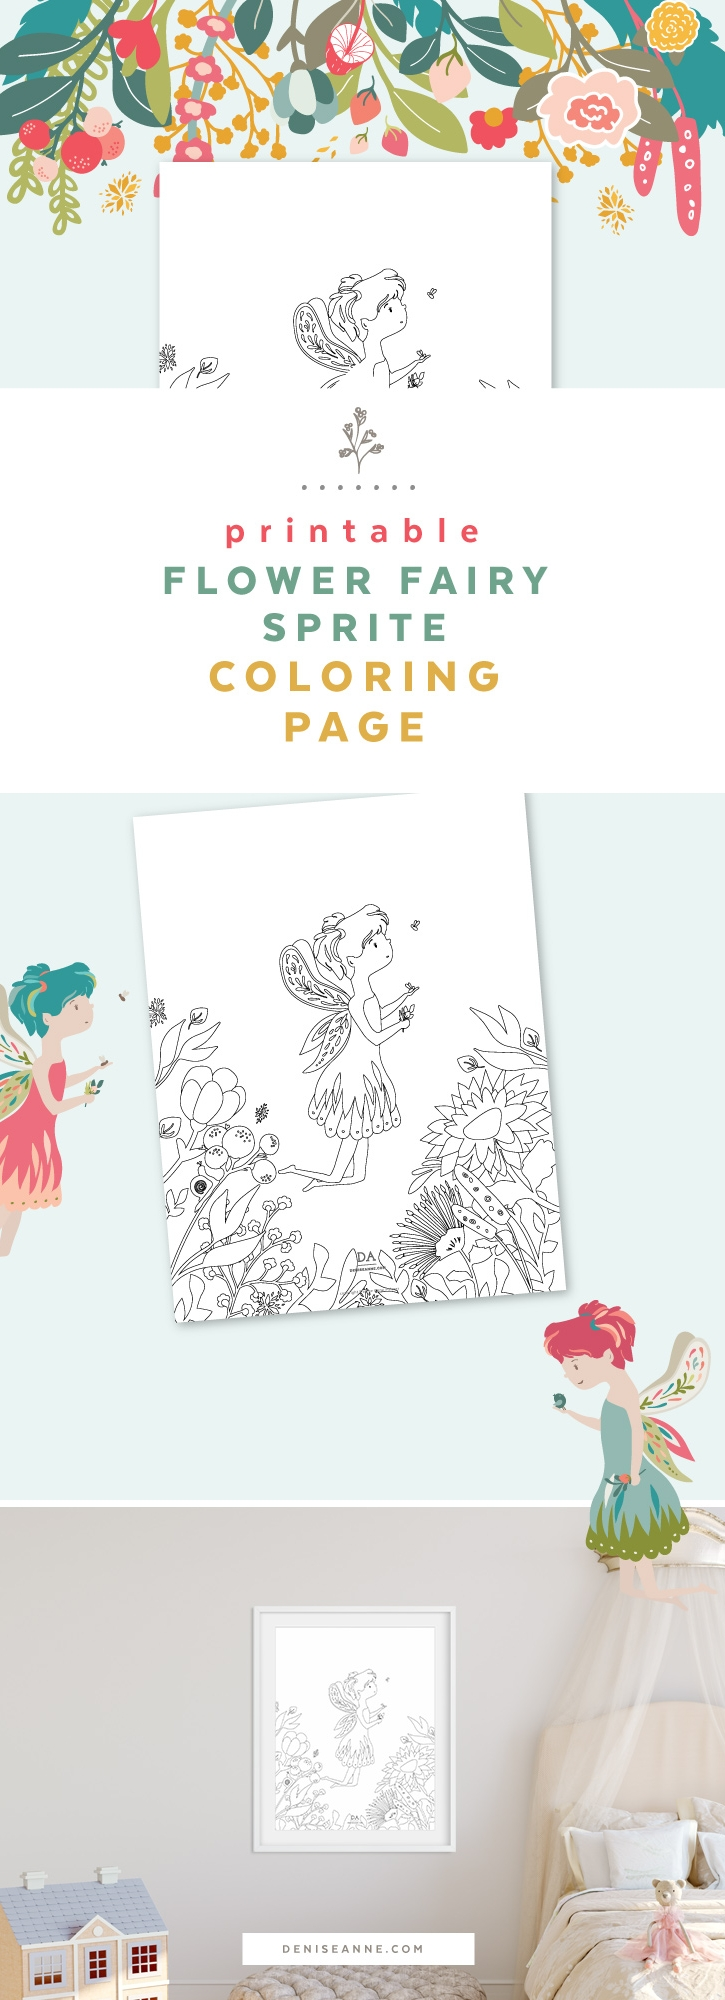 free-printable-flower-fairy-sprite-coloring-page